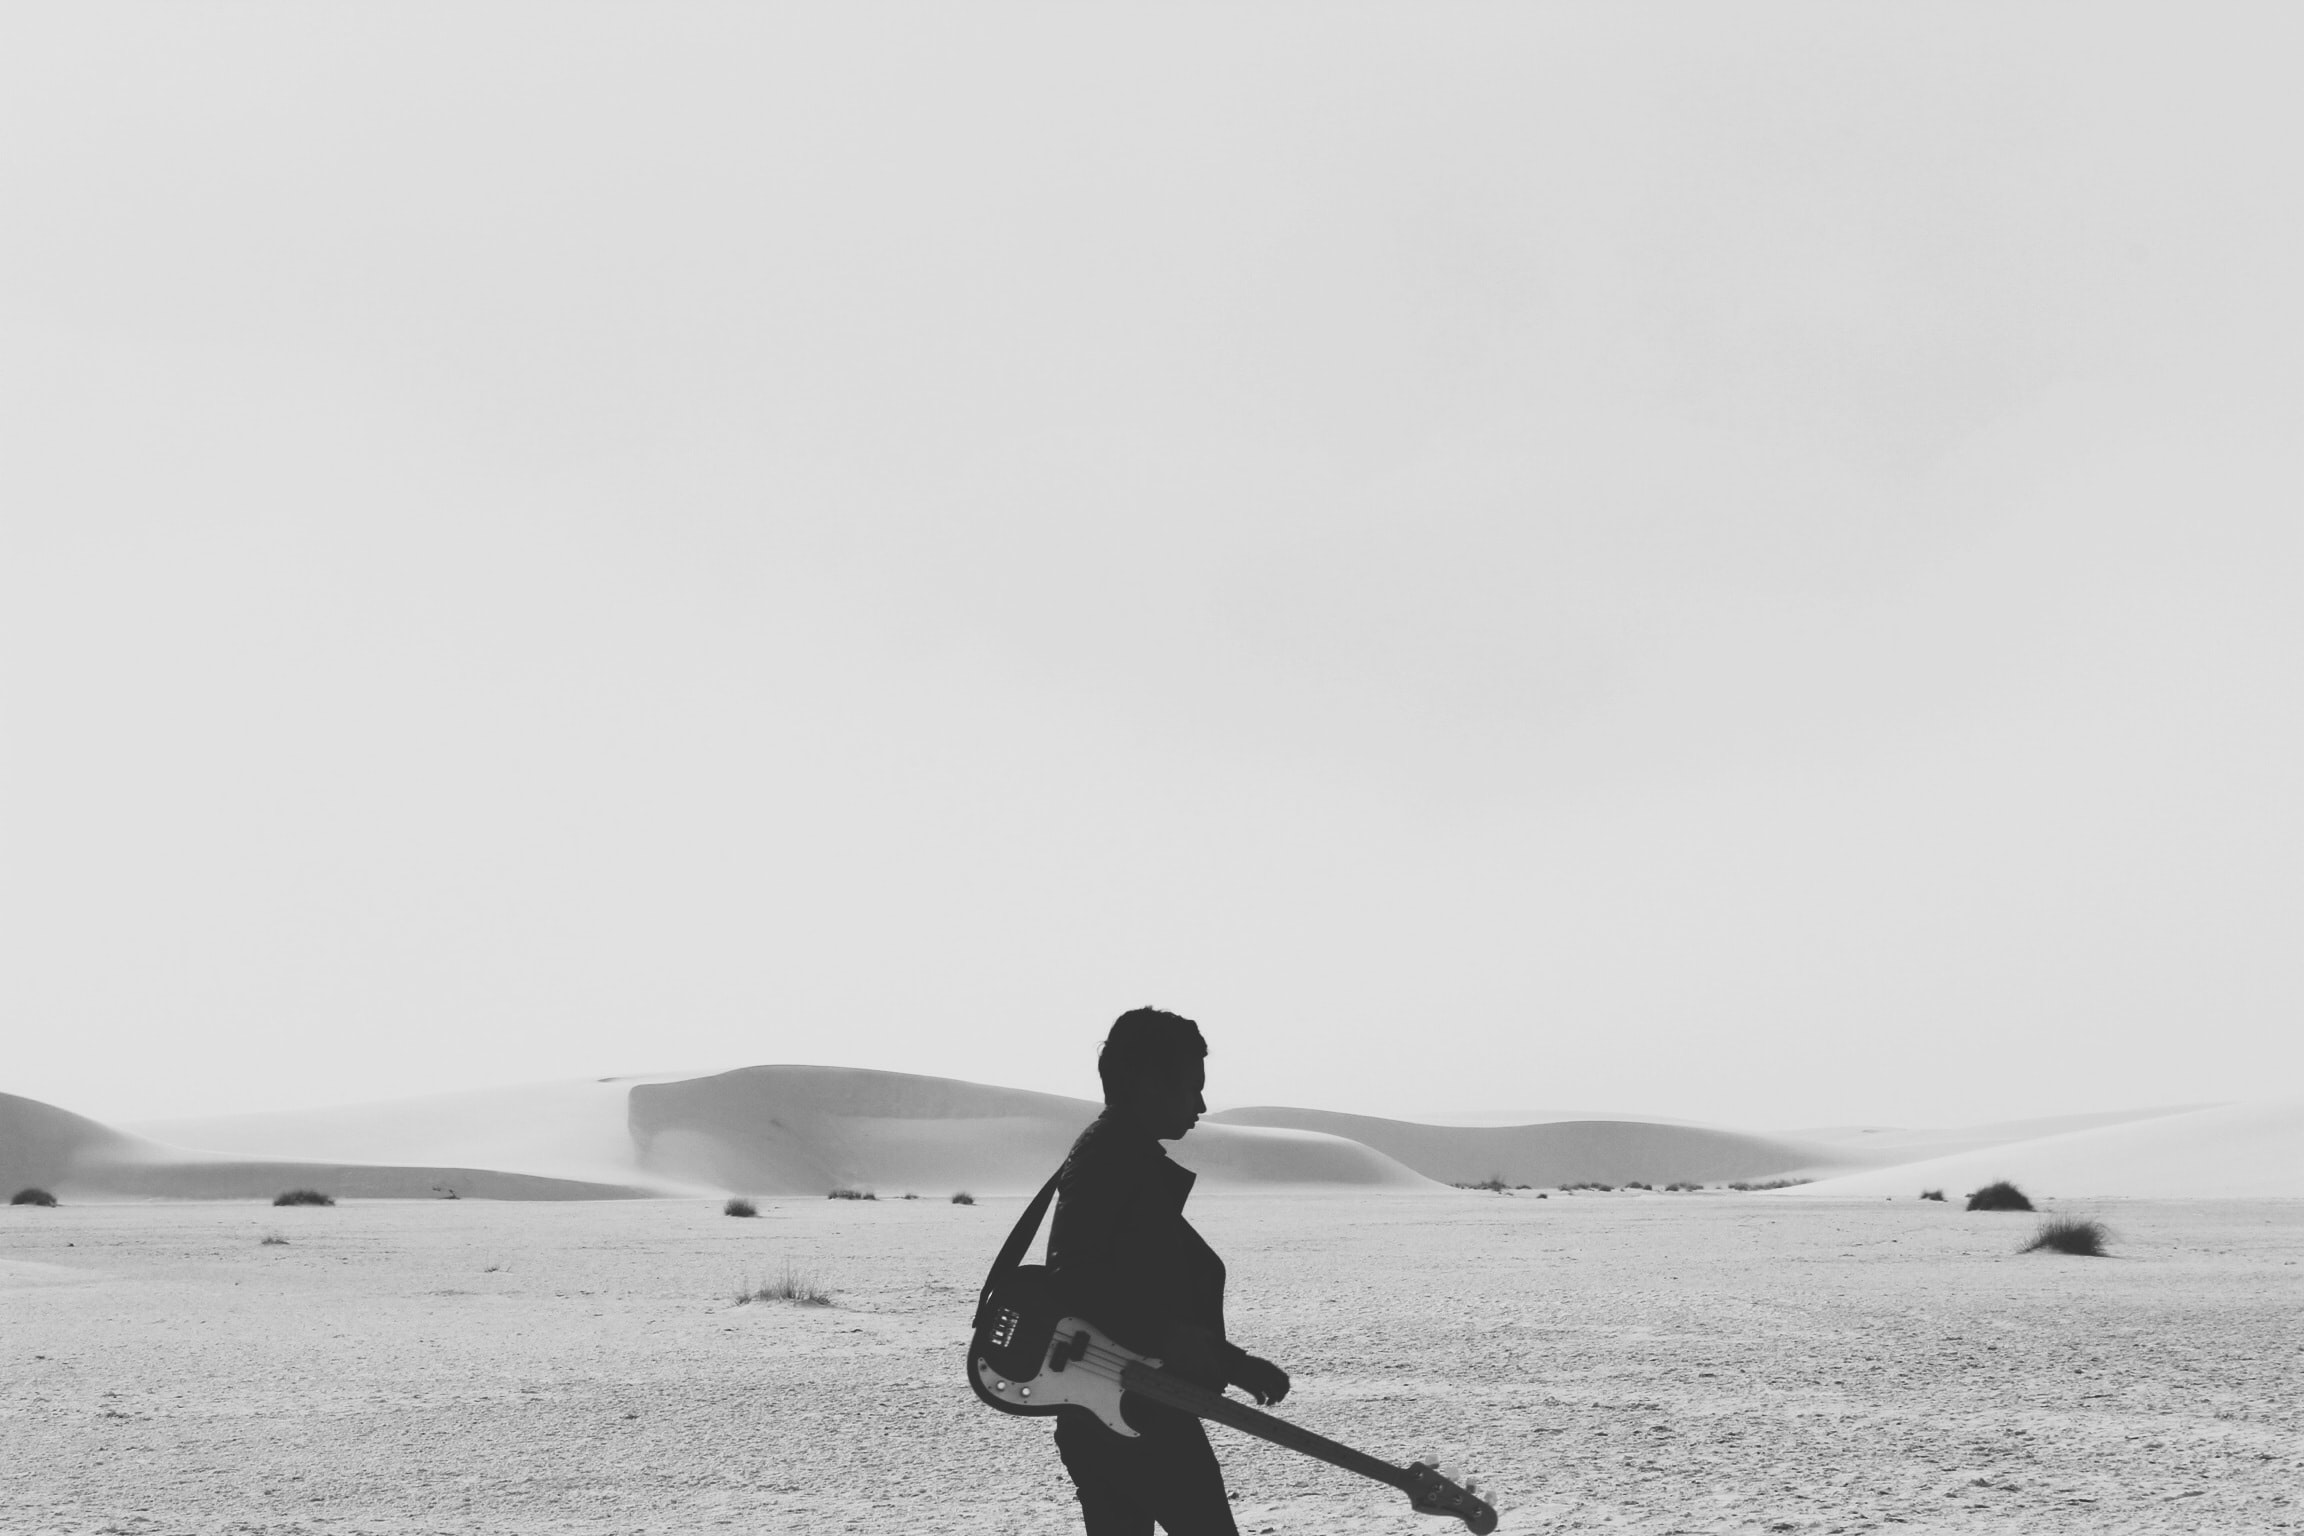 A black-and-white photo of a man with a guitar silhouetted against sand dunes in a desert